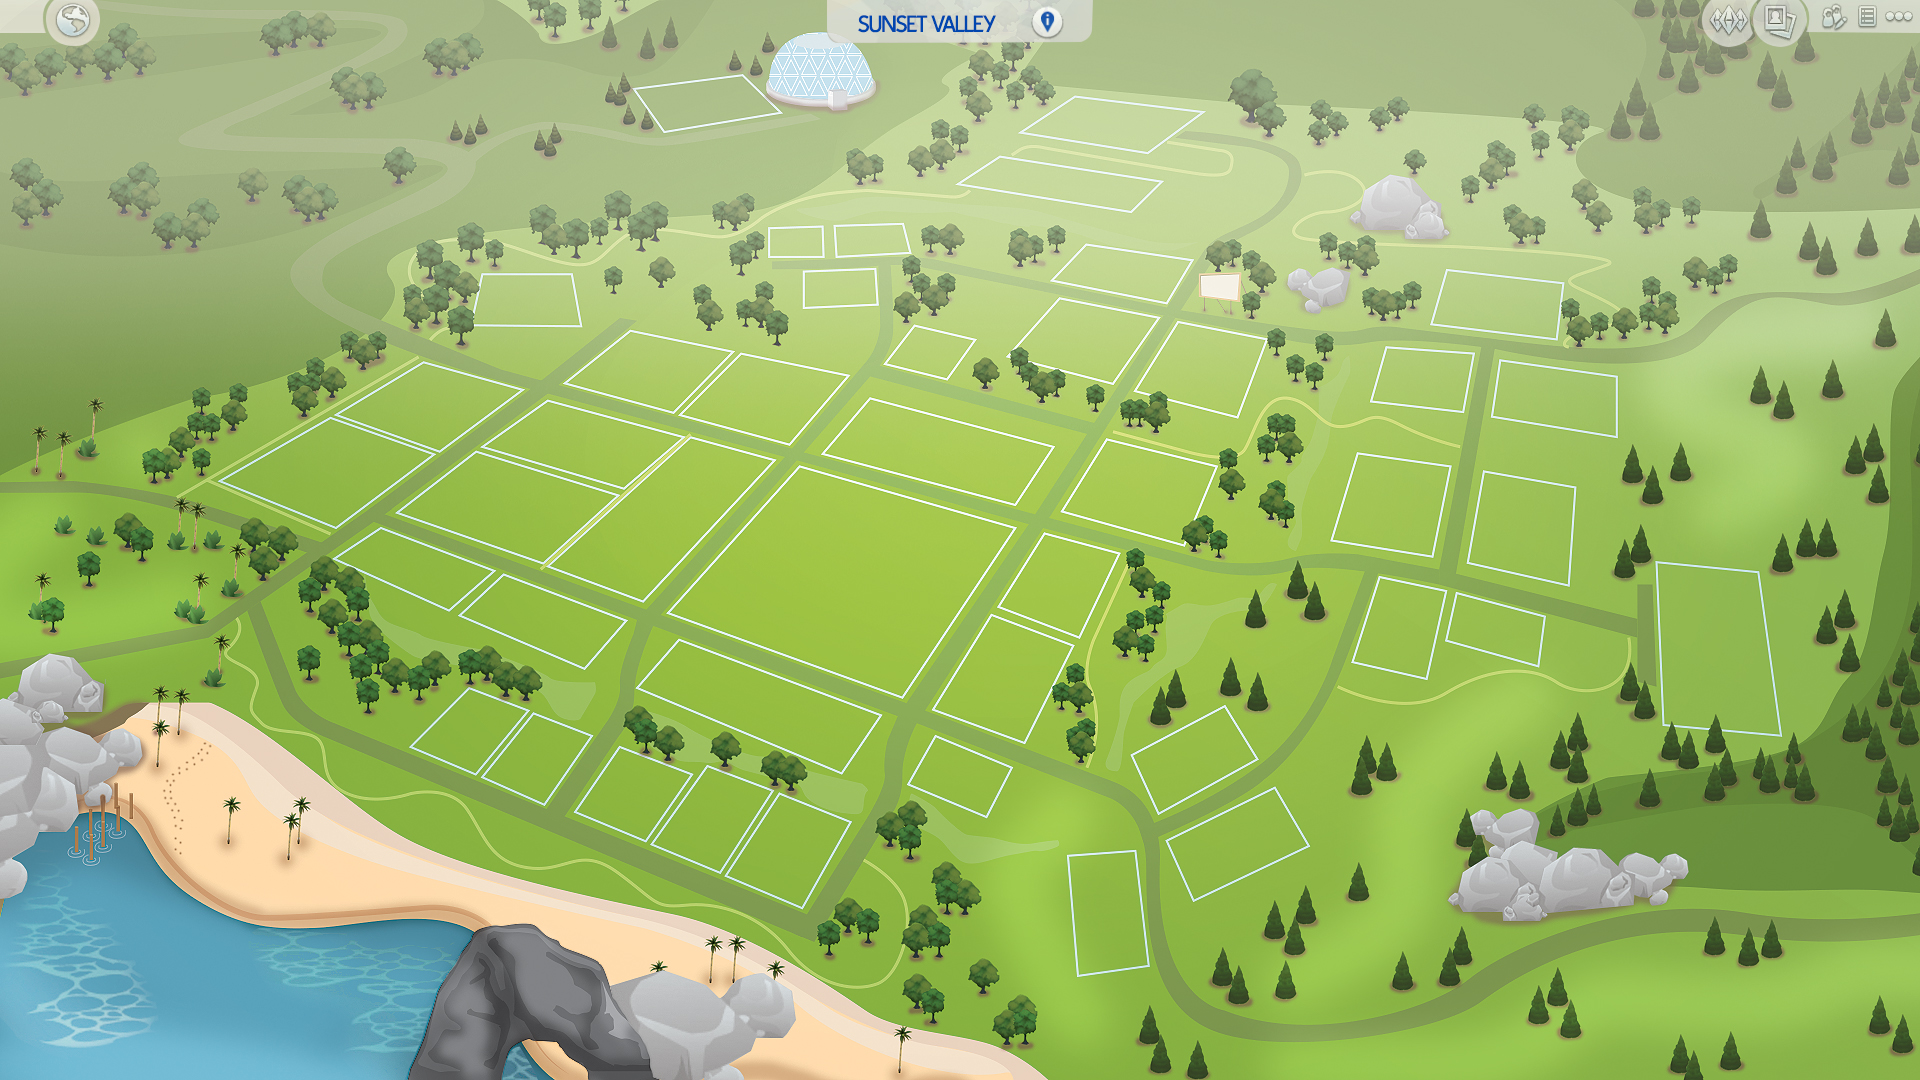 _sims_4_fanmade_map__sunset_valley_by_filipesims-dan5qq3.jpg